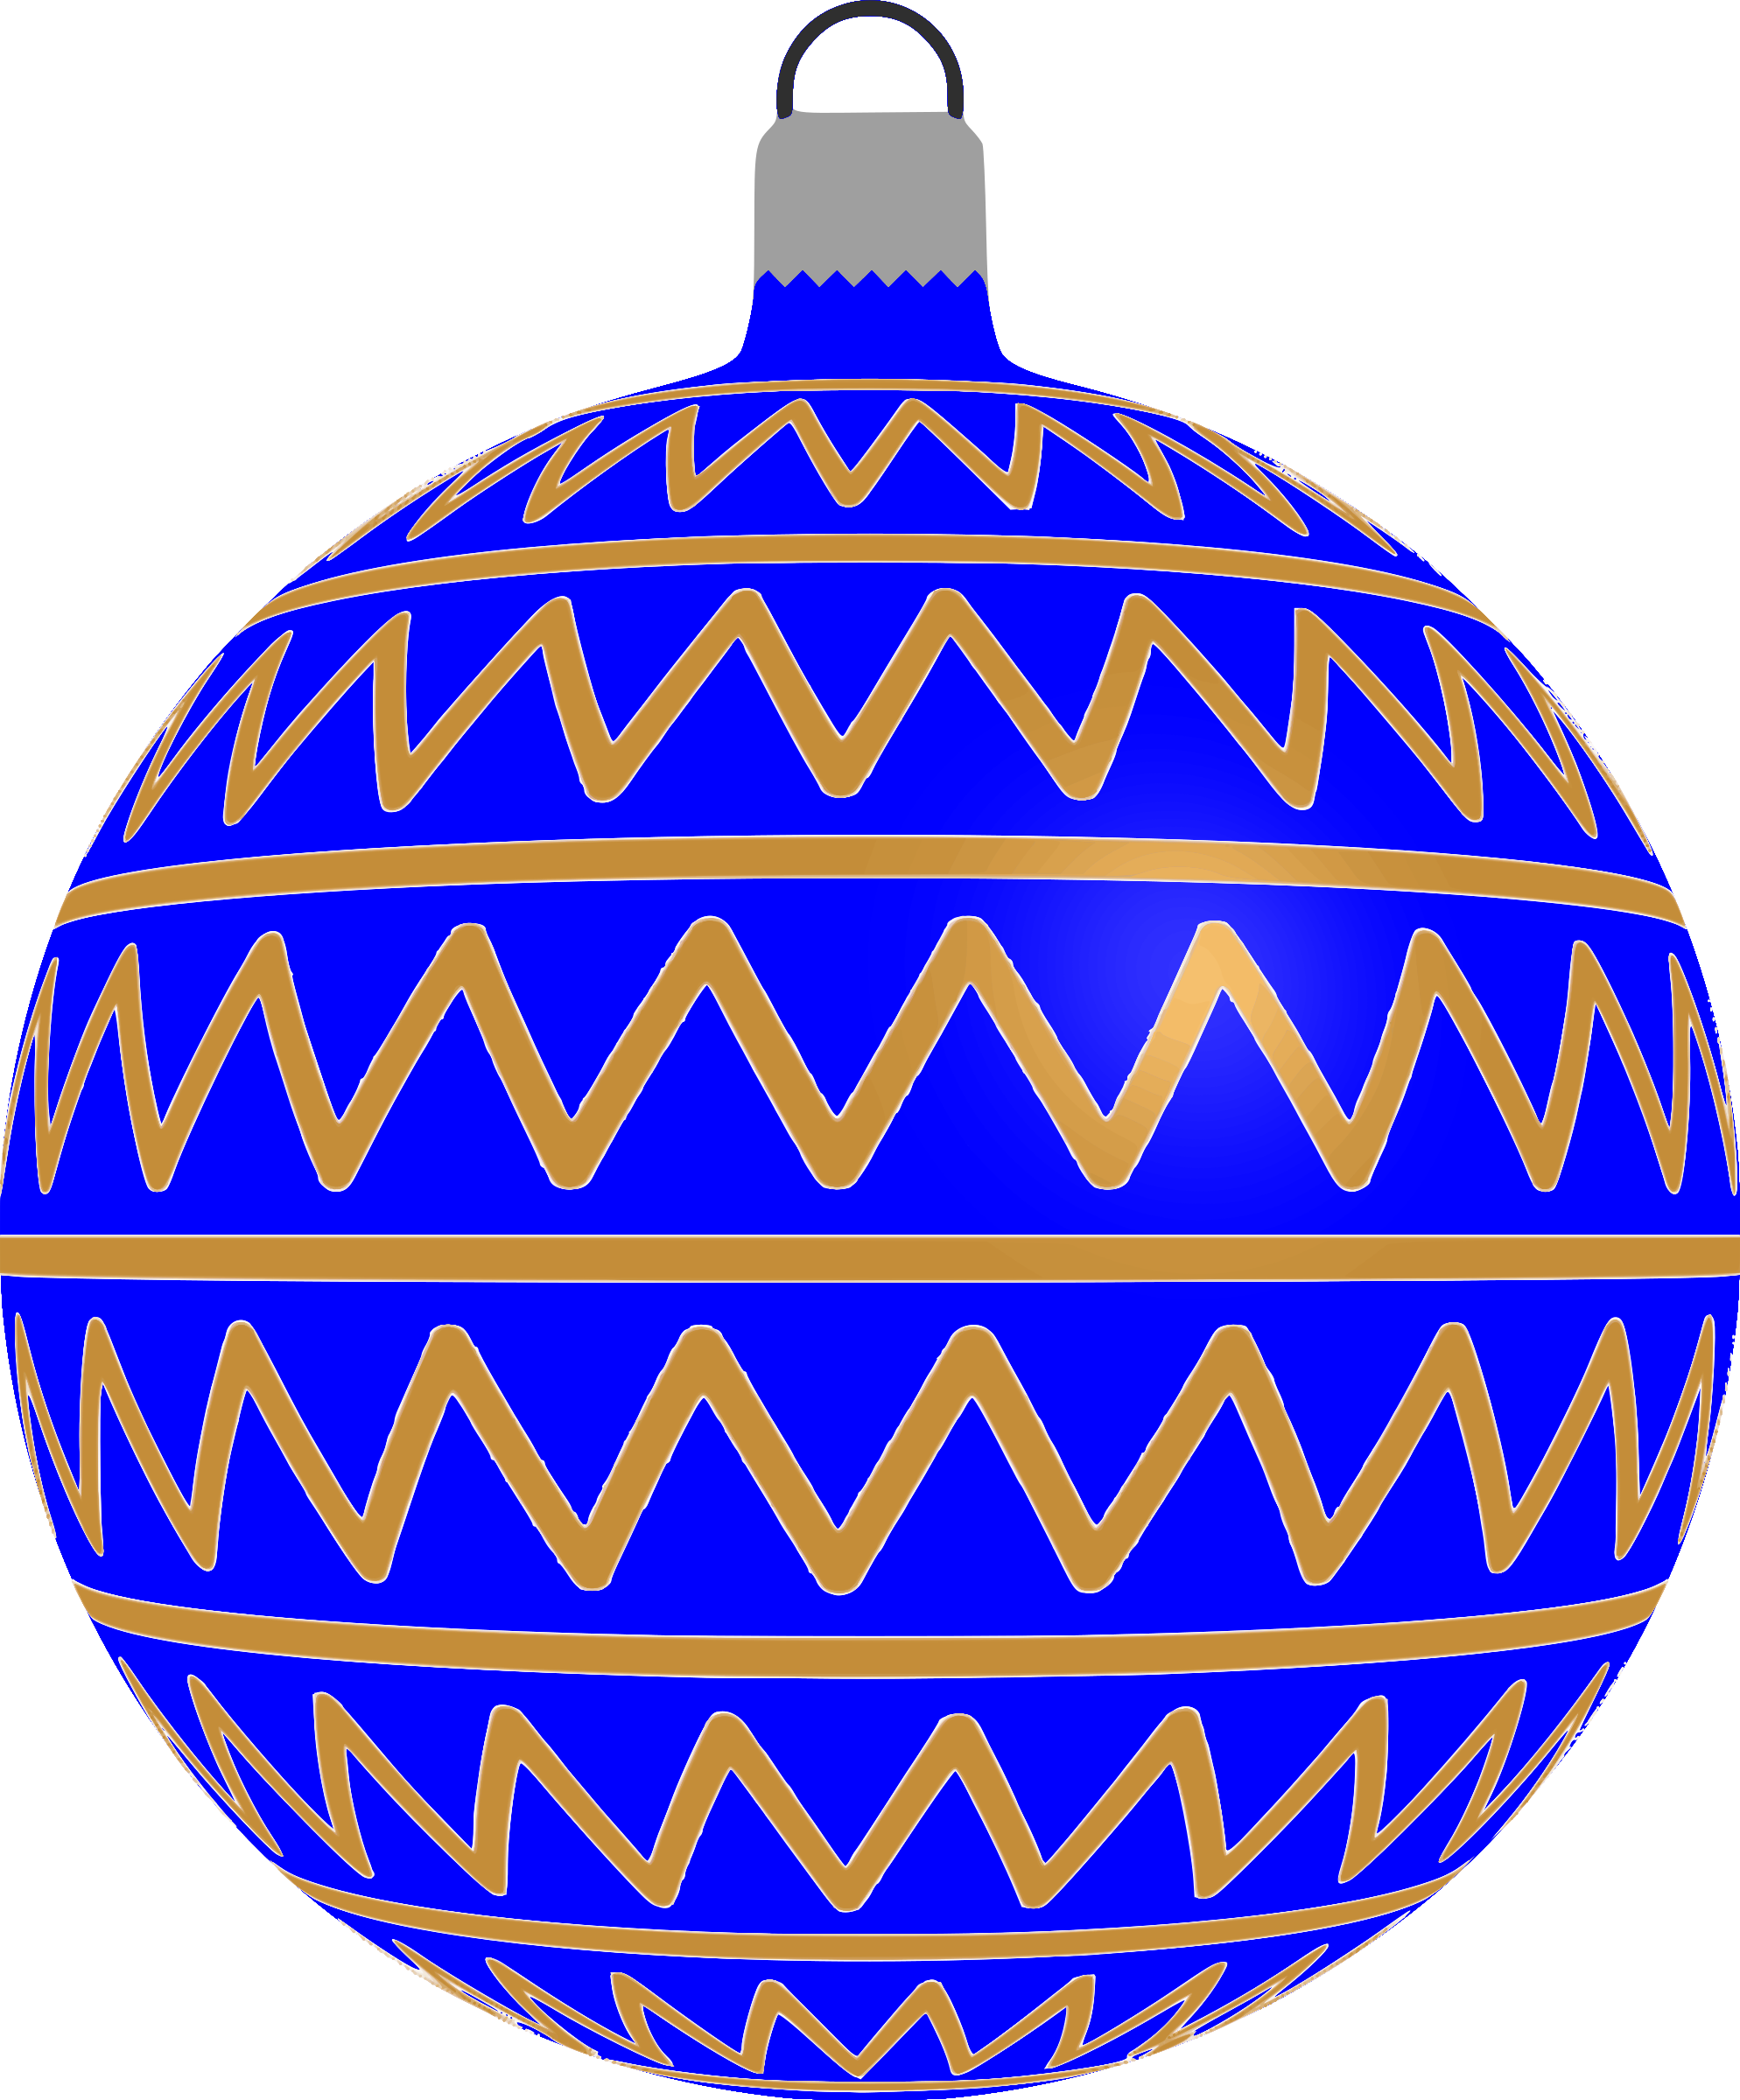 Patterned bauble 2 (blue) by Firkin